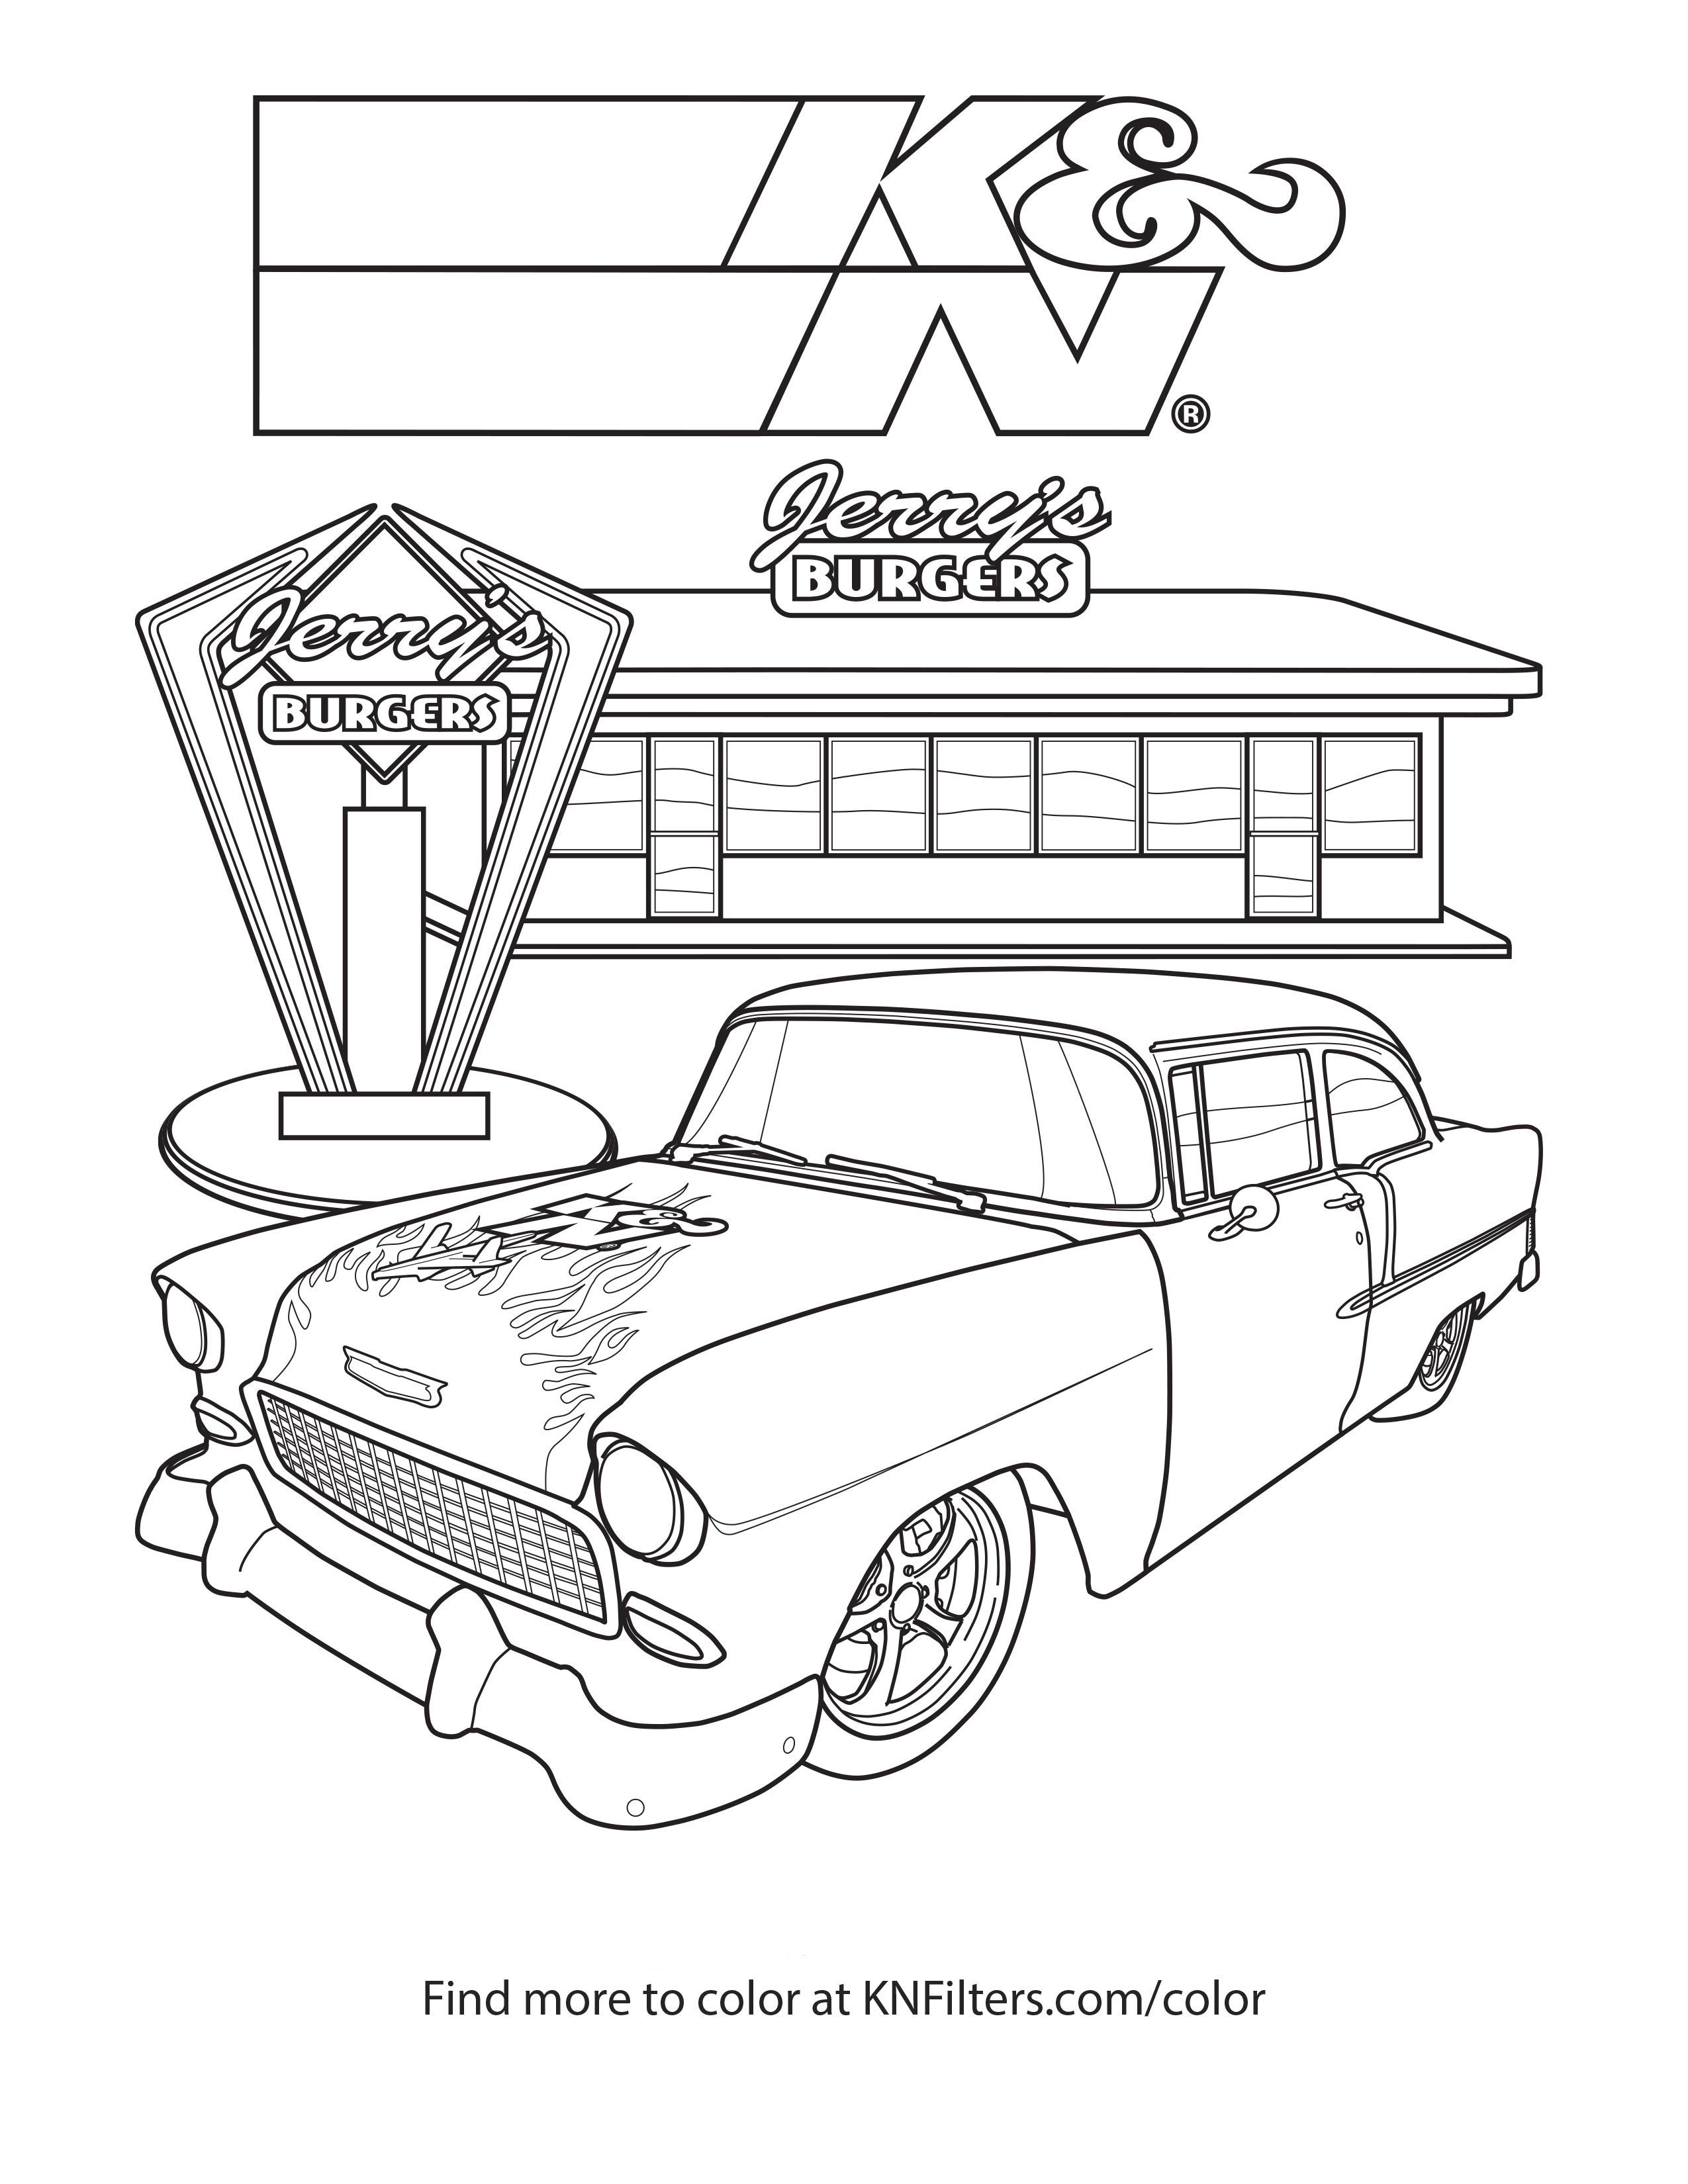 Chevy Symbol Drawing At Getdrawings